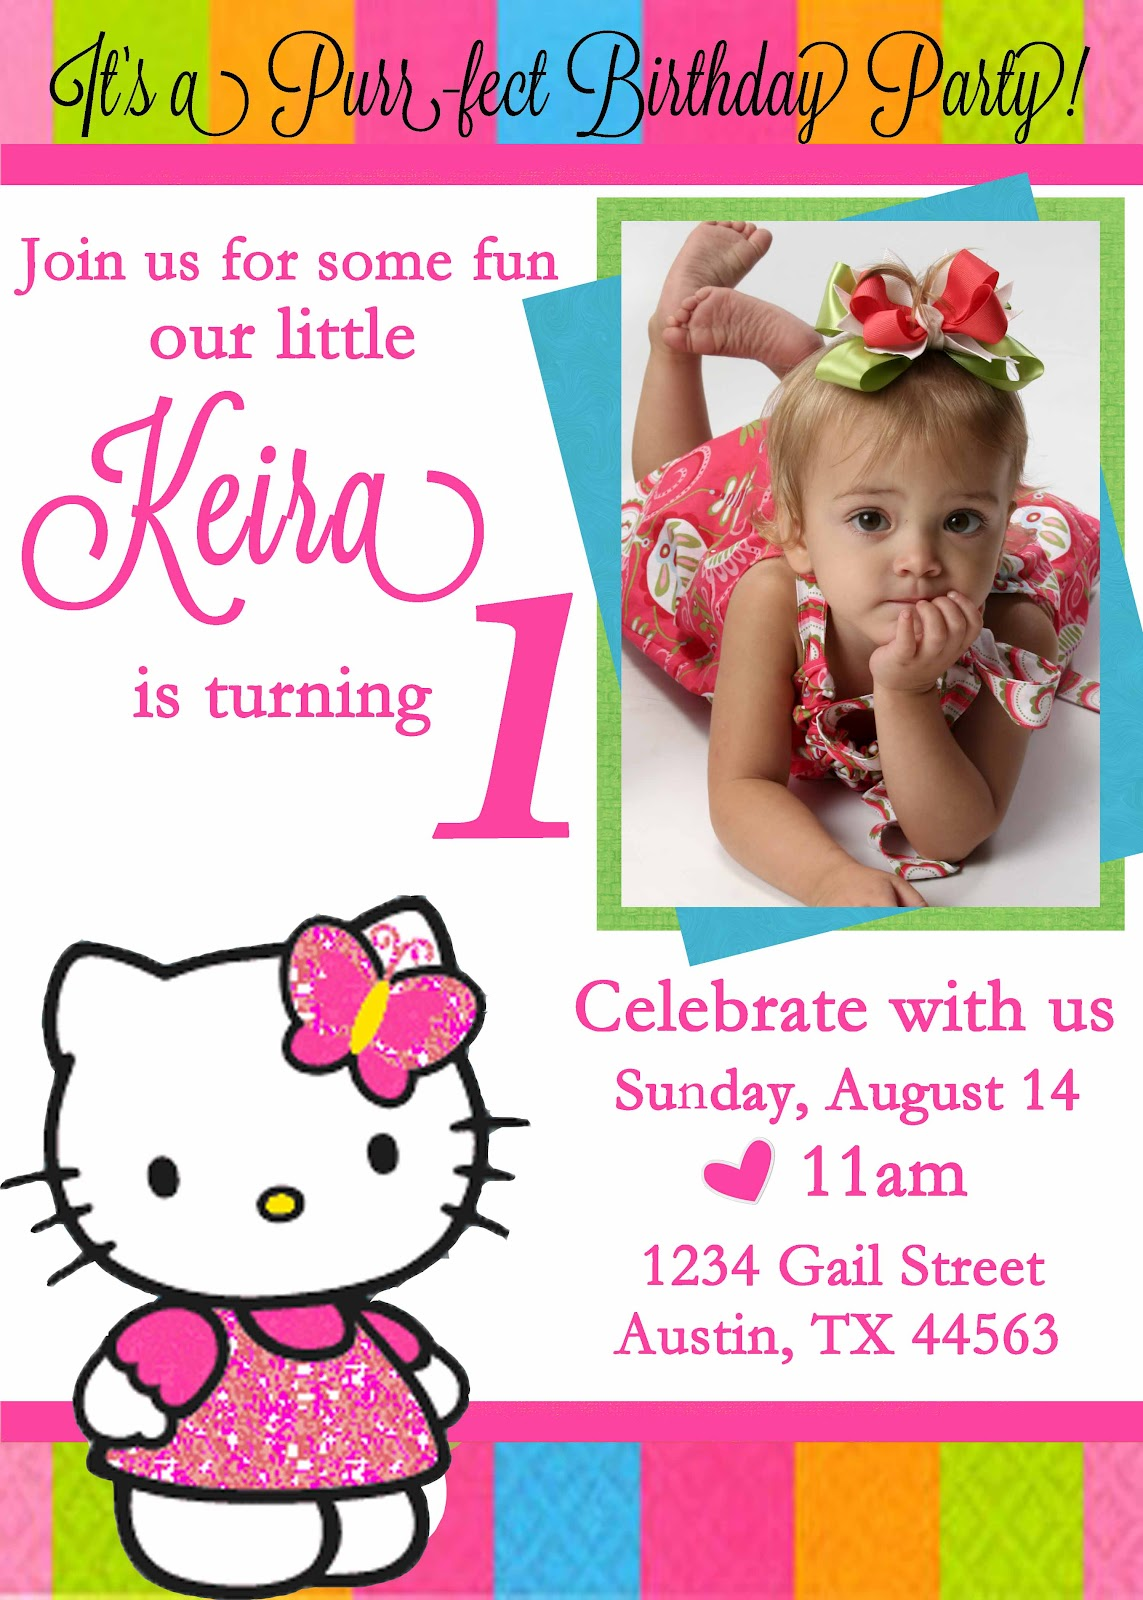 online birthday invitation card maker with photo ; free_online_invitation_cards_for_birthday_party_free_personalized_hello_kitty_birthday_invitations_drevio_8